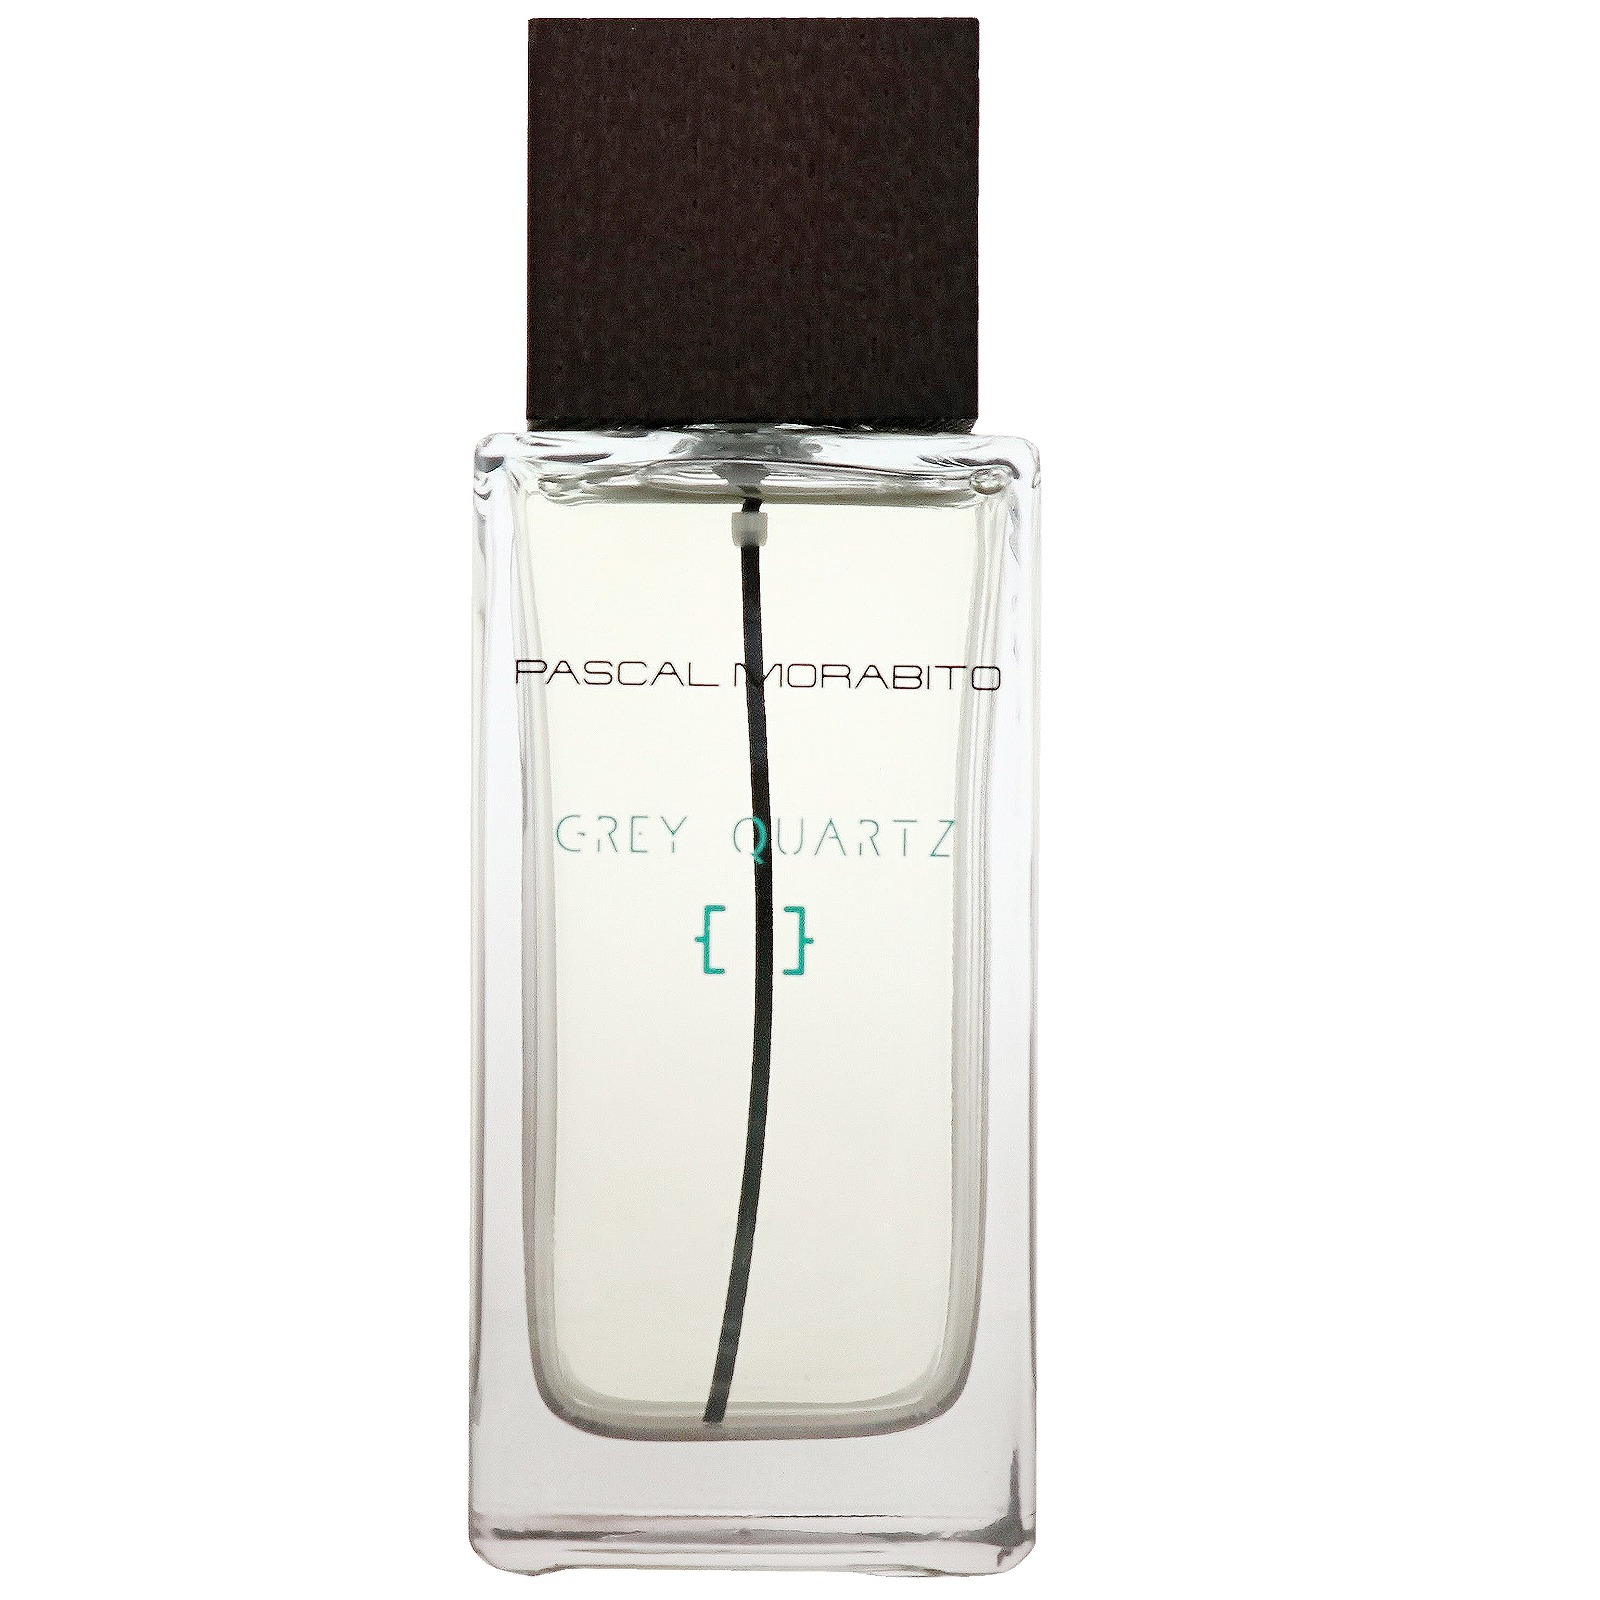 Pascal Morabito Grey Quartz Eau de Toilette Spray 100ml